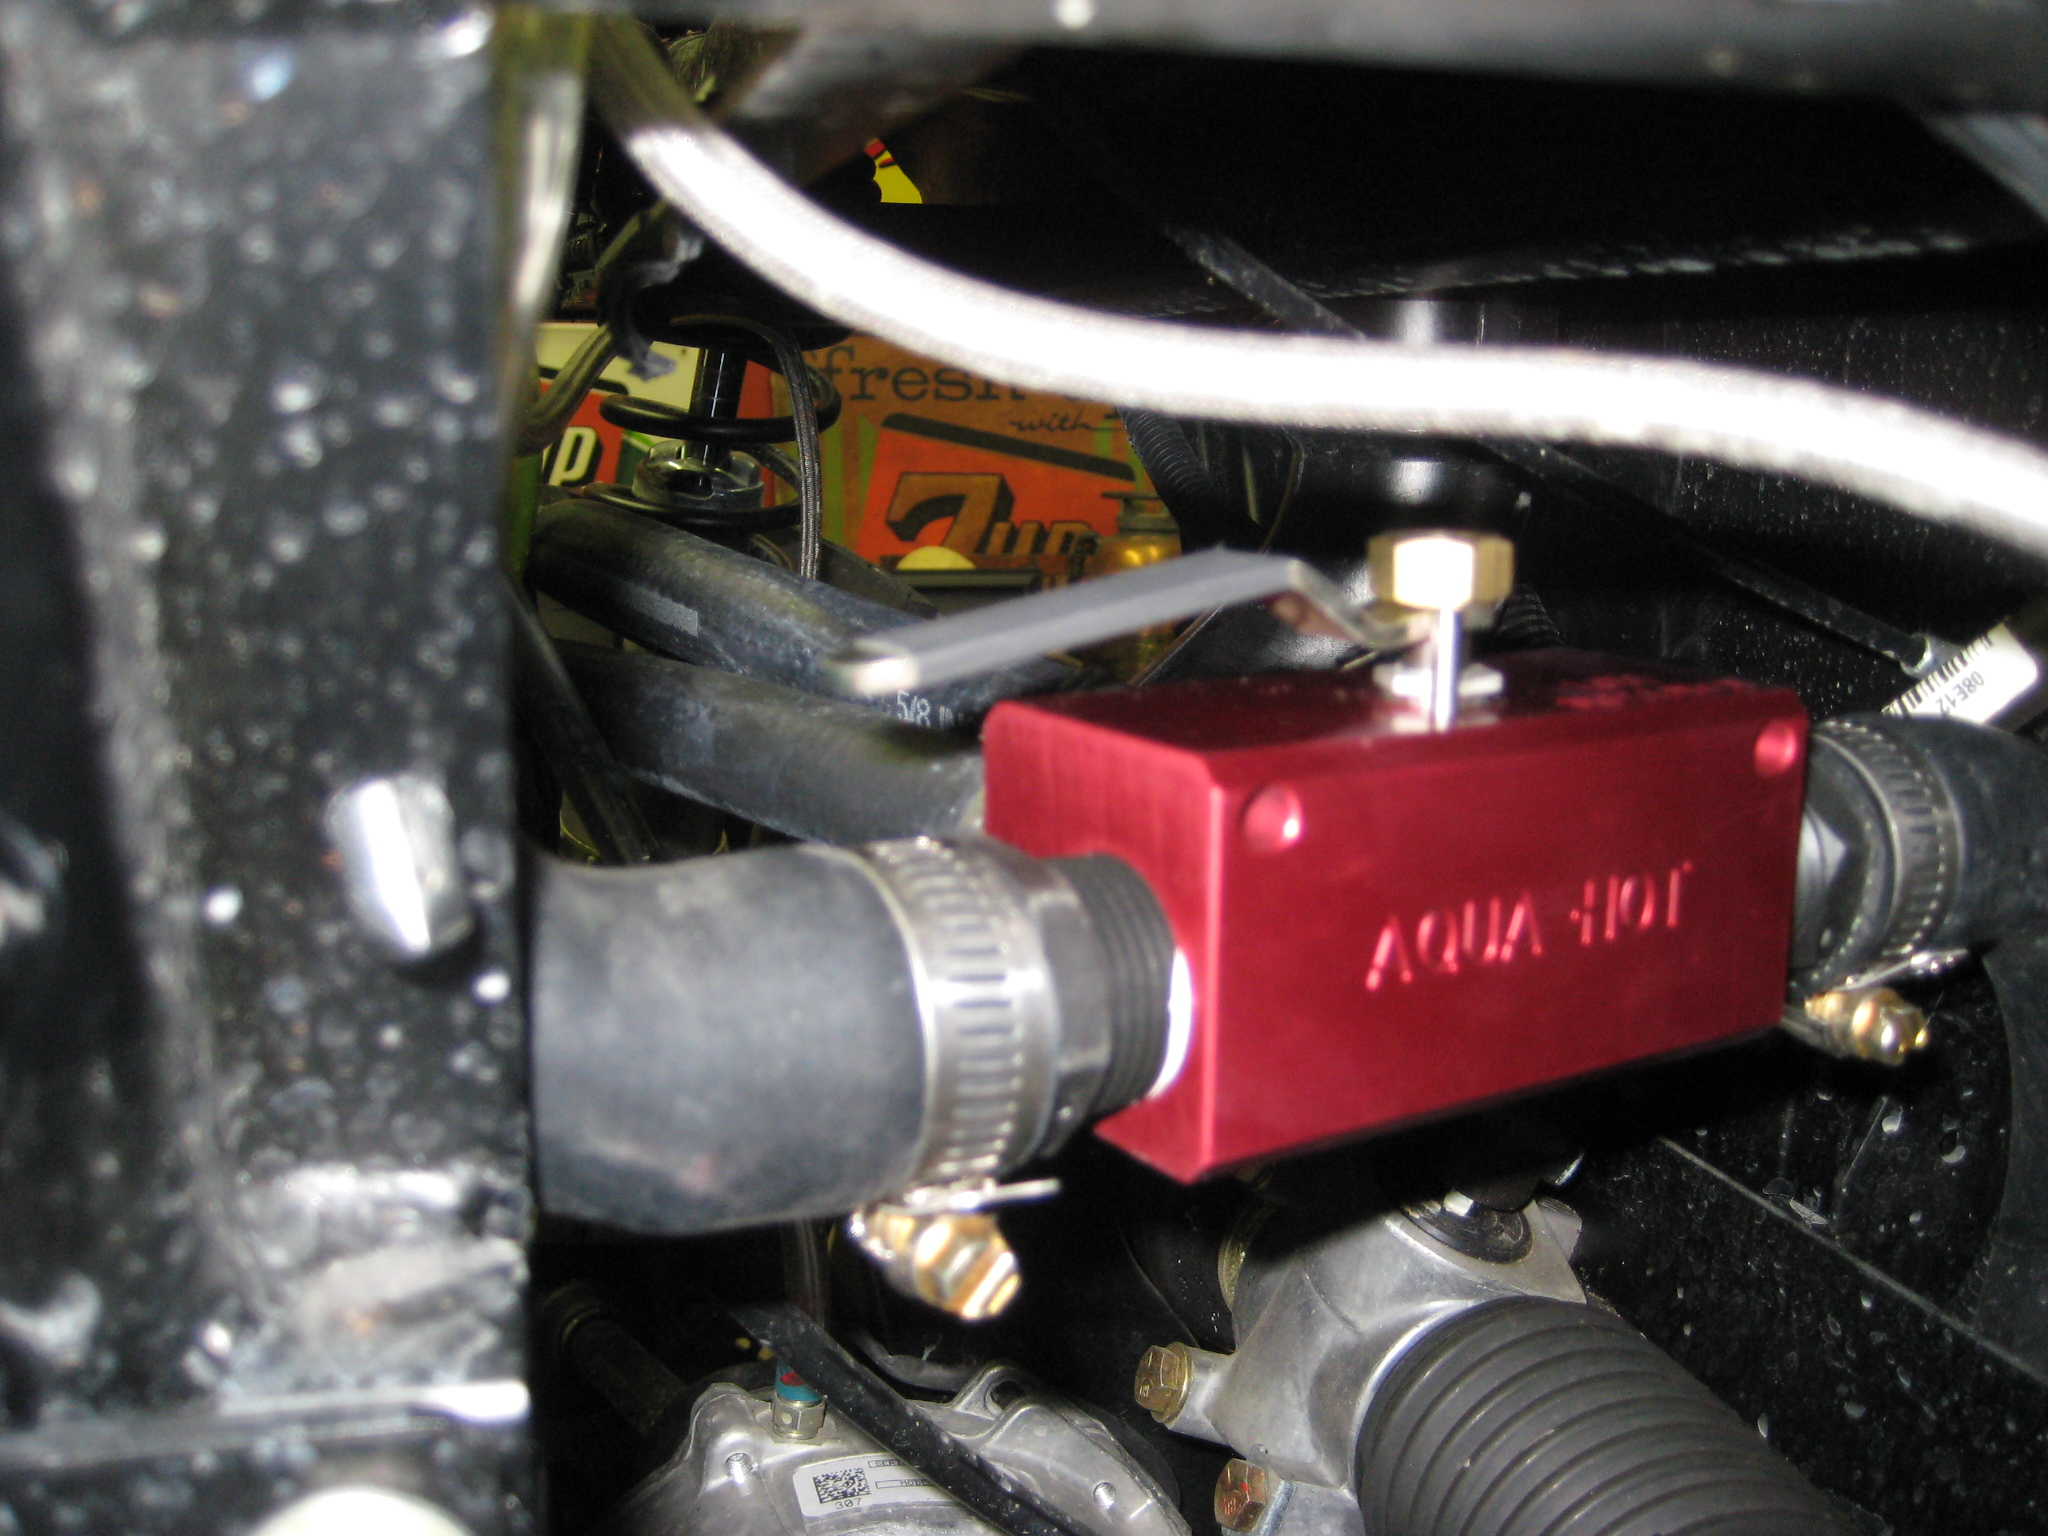 Bleed Nipple furthermore D Mustang L Coolant Leak Pulley Img besides F additionally D New Coolant Reservoir Cap Failed Pic together with Coolantbleedervalveall L Ssd. on coolant air bleed valve